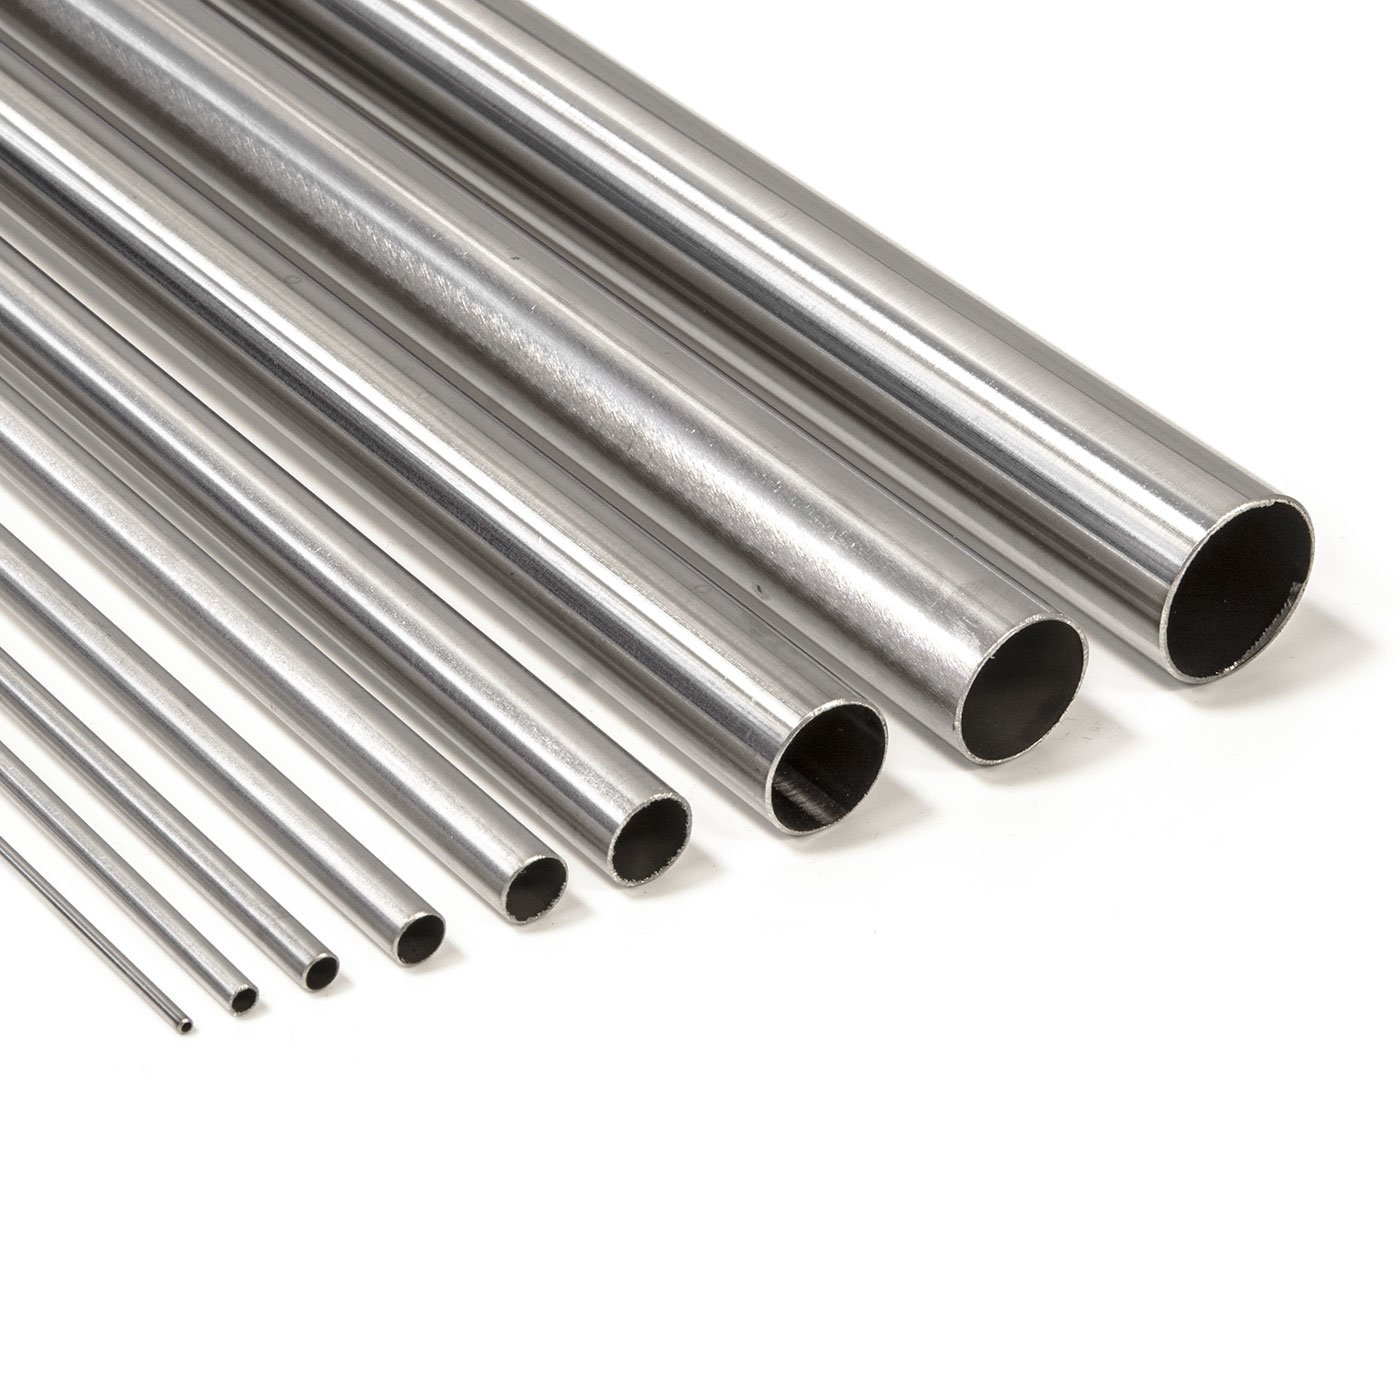 Thinwall stainless steel tubing